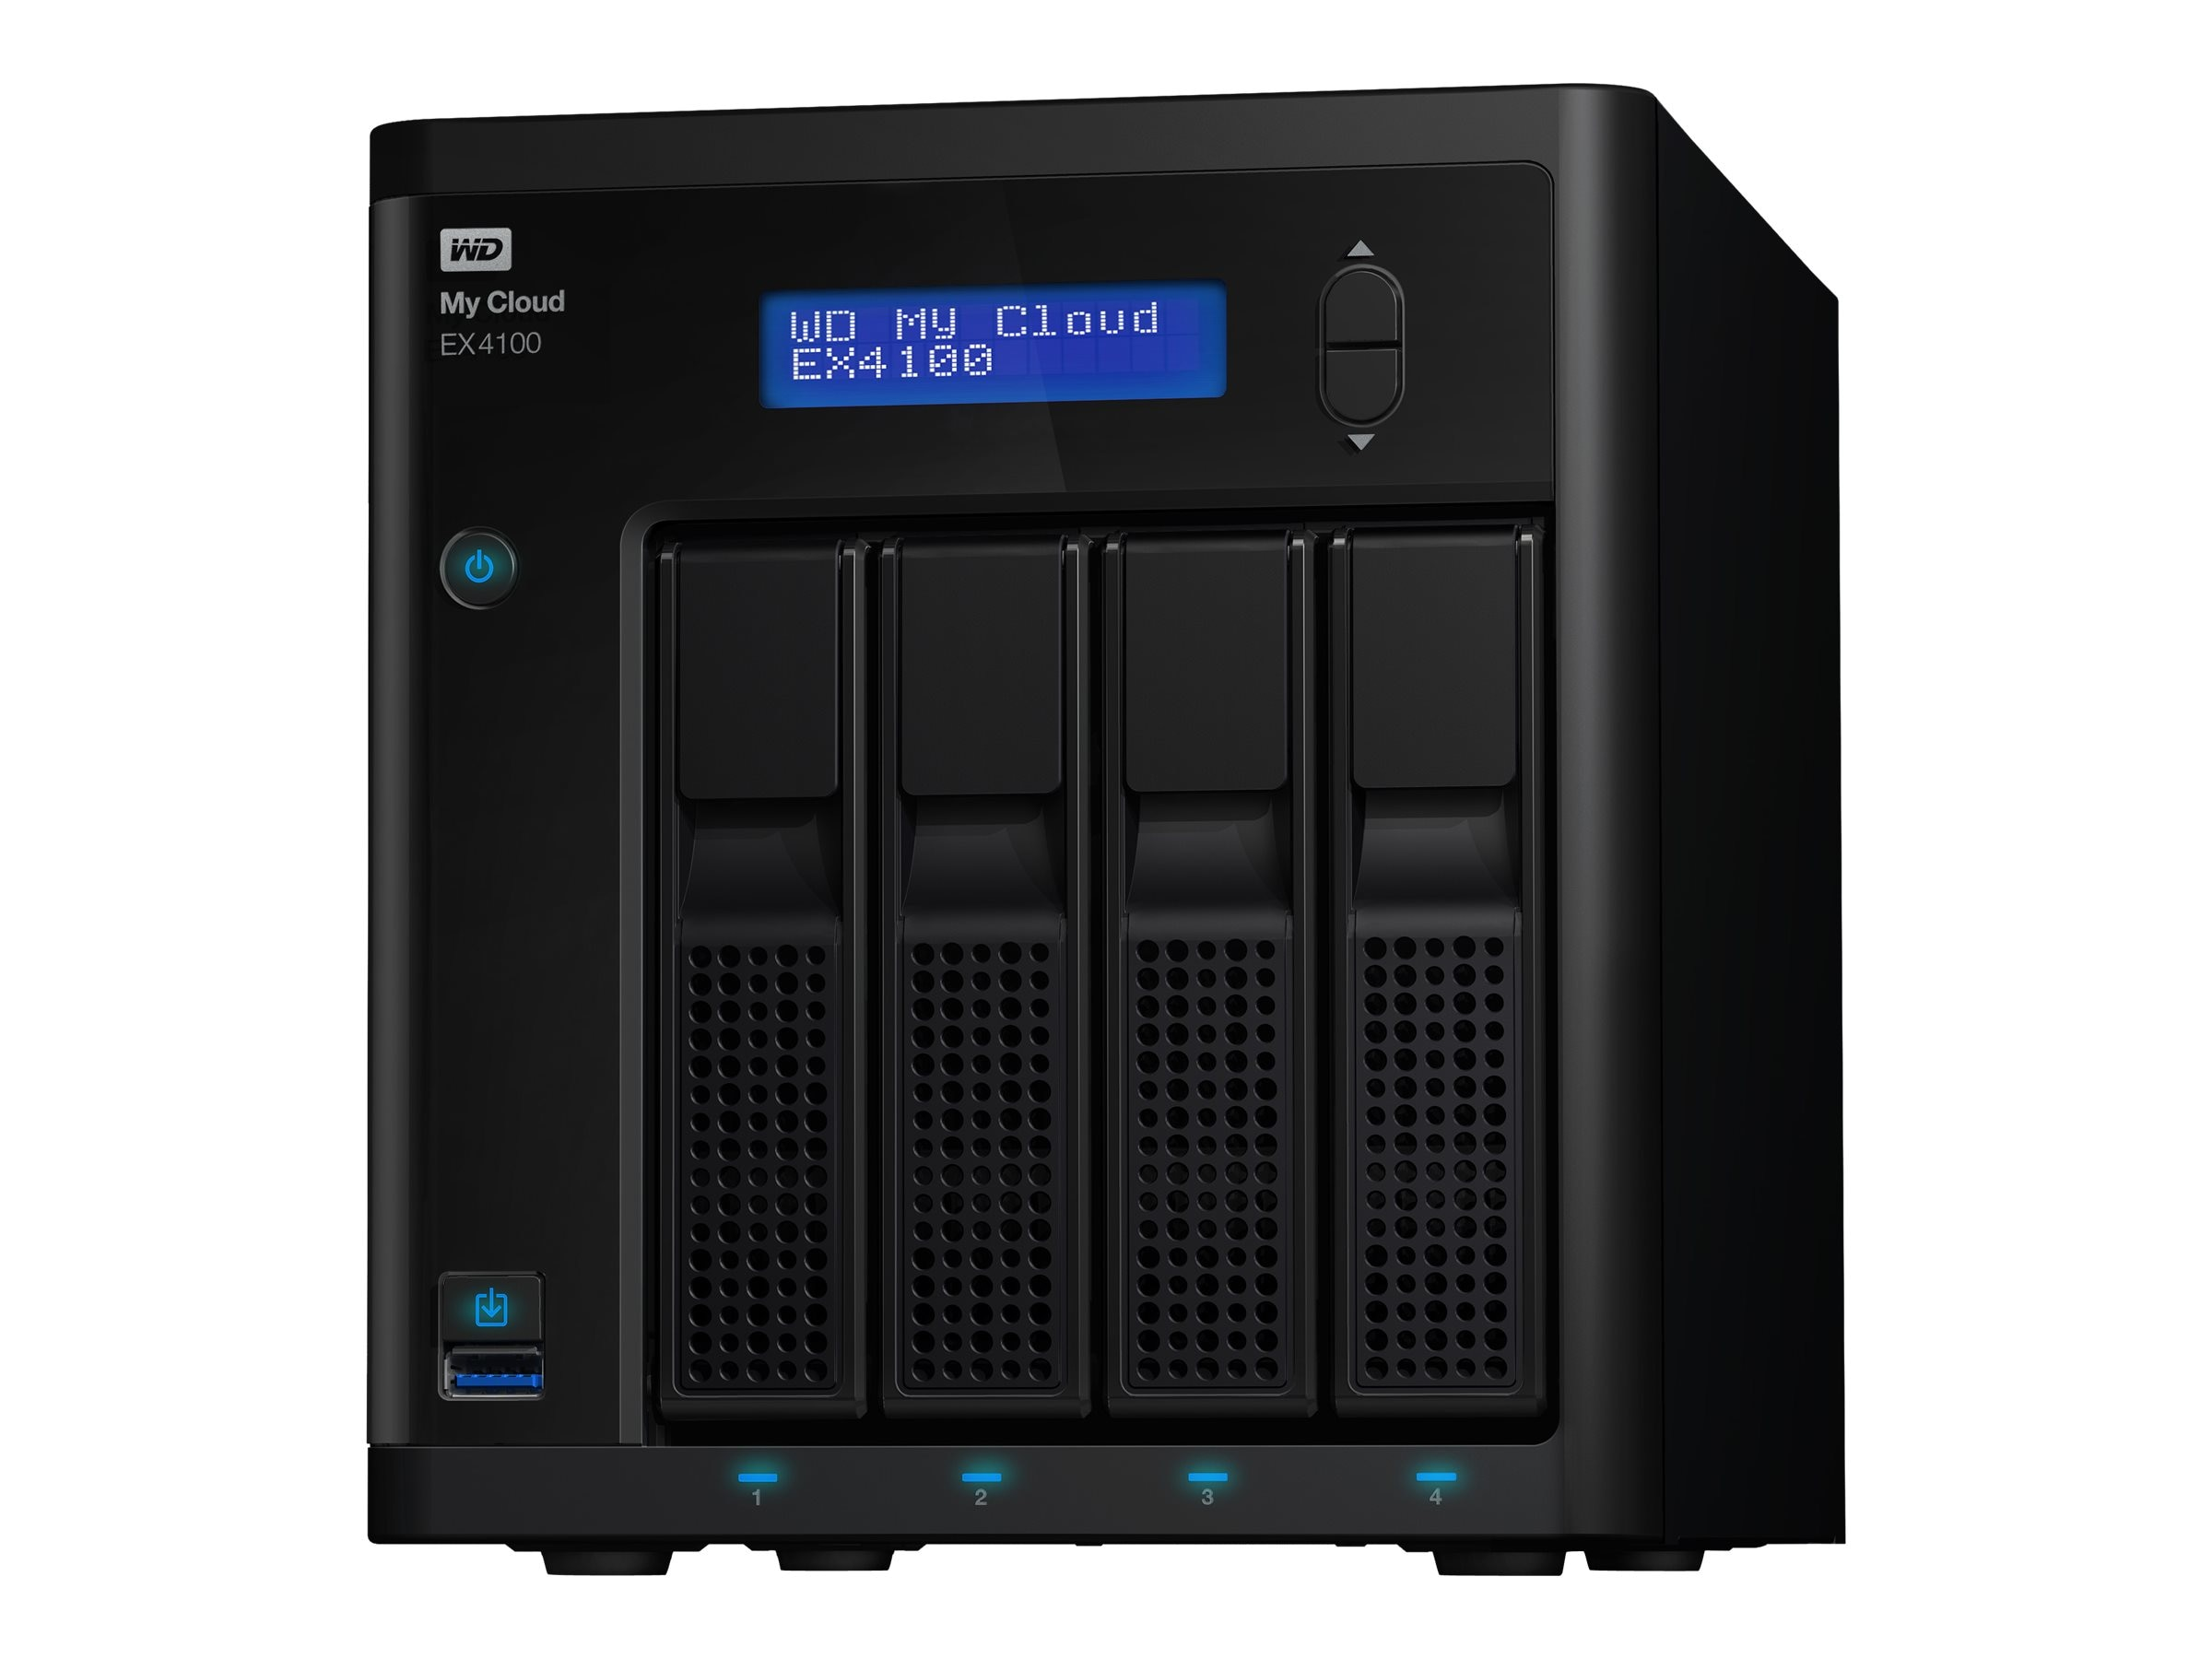 WD 24TB My Cloud EX4100 Network Attached Storage, WDBWZE0240KBK-NESN, 18442860, Network Attached Storage